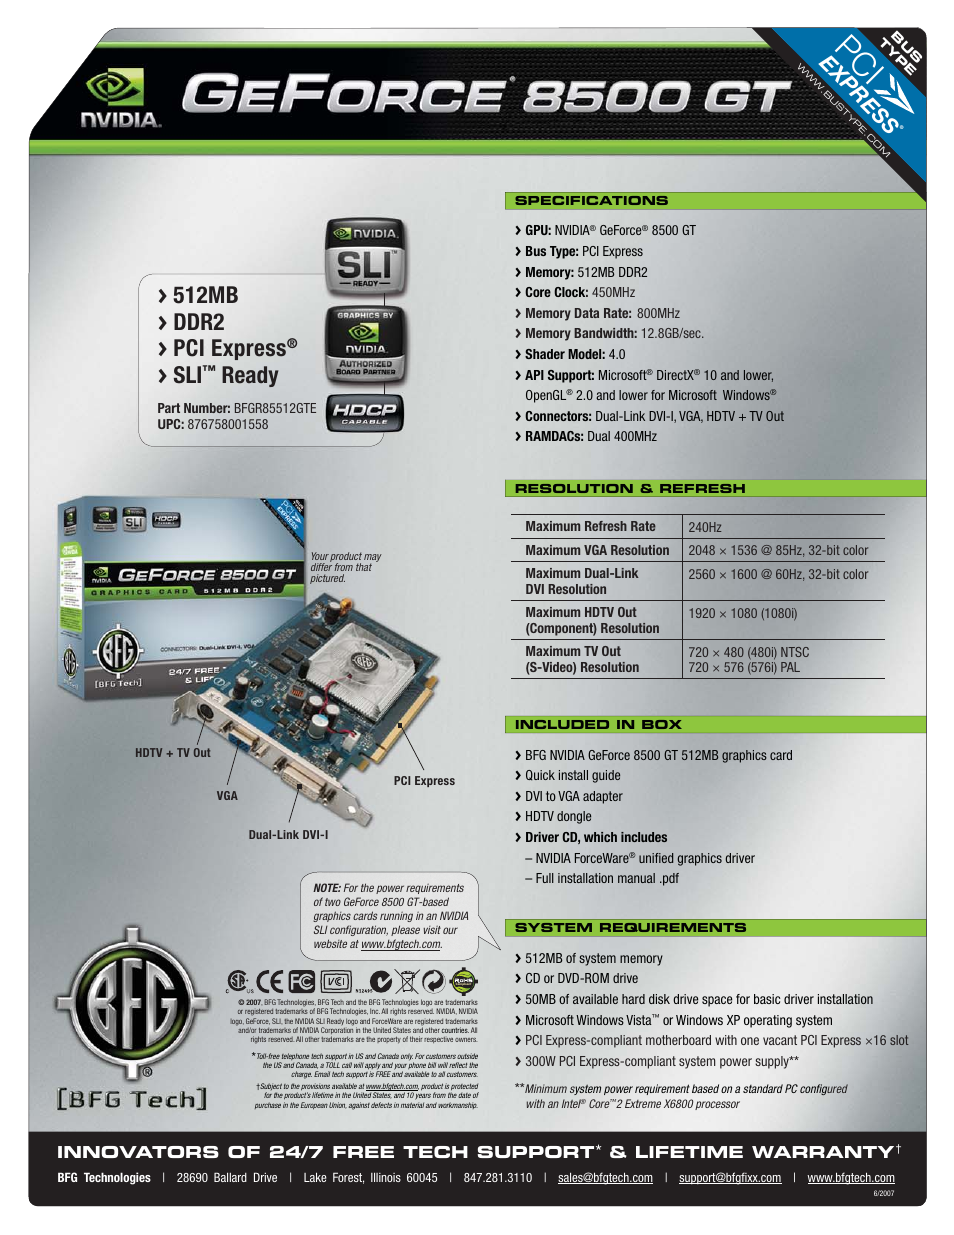 Nvidia GeForce 8500 GT User Manual | 1 page